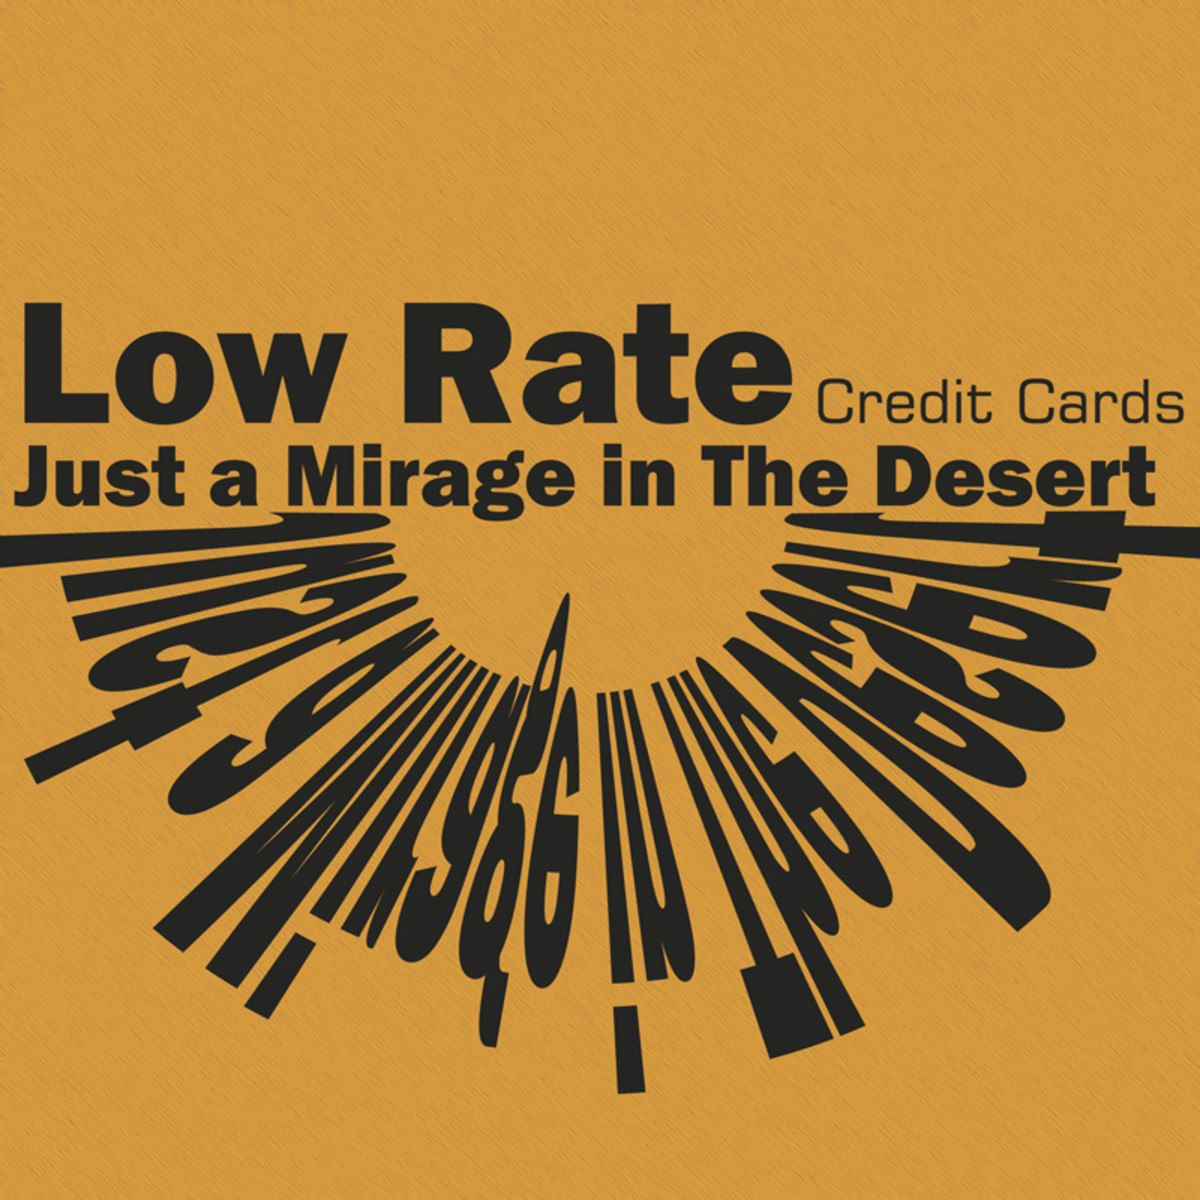 low-rate-credit-cards-just-a-mirage-in-the-desert